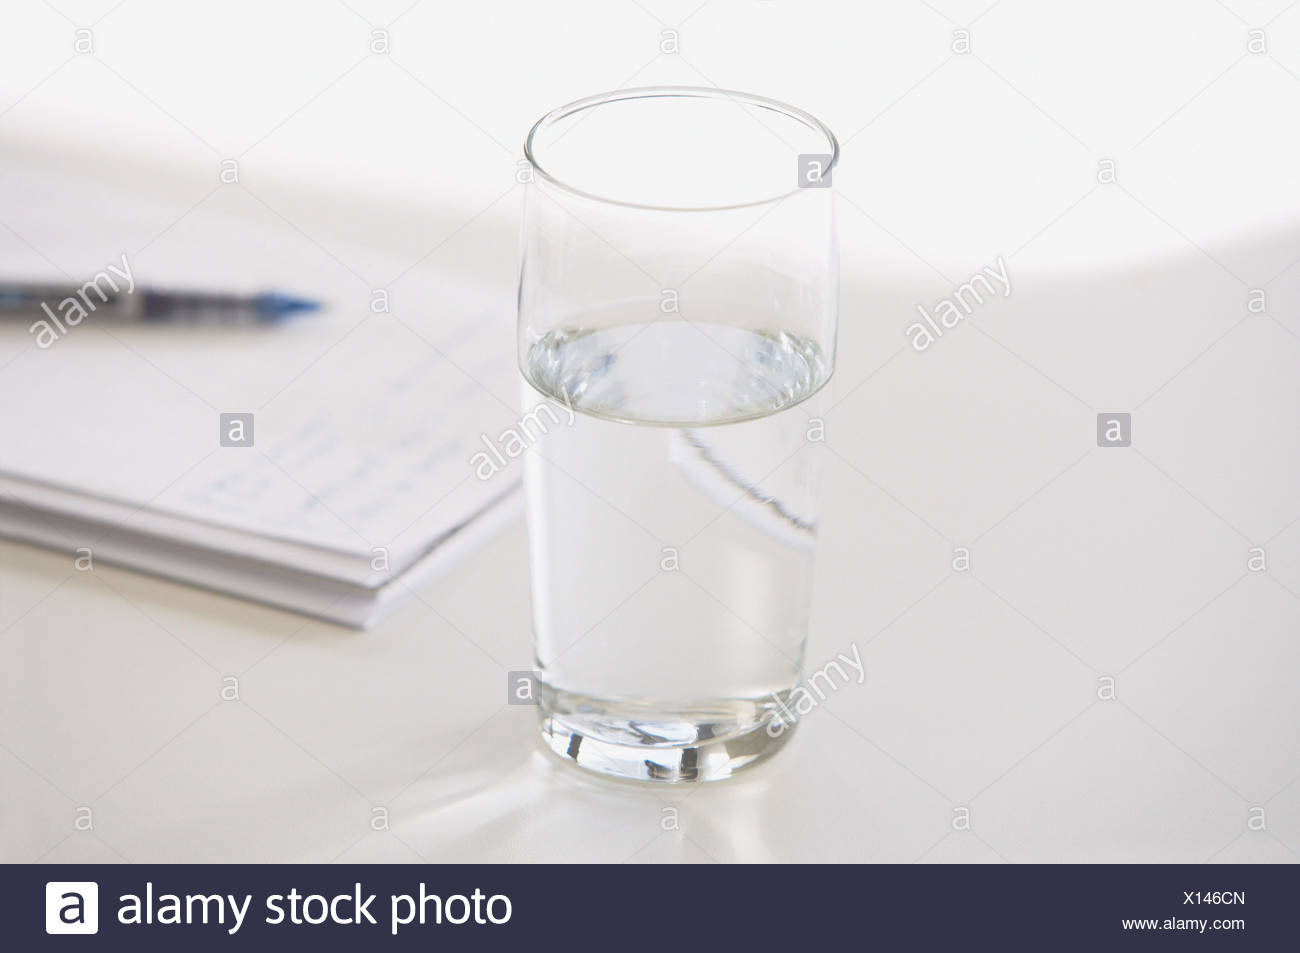 Closeup of glass of water with pen and notebook - Stock Image